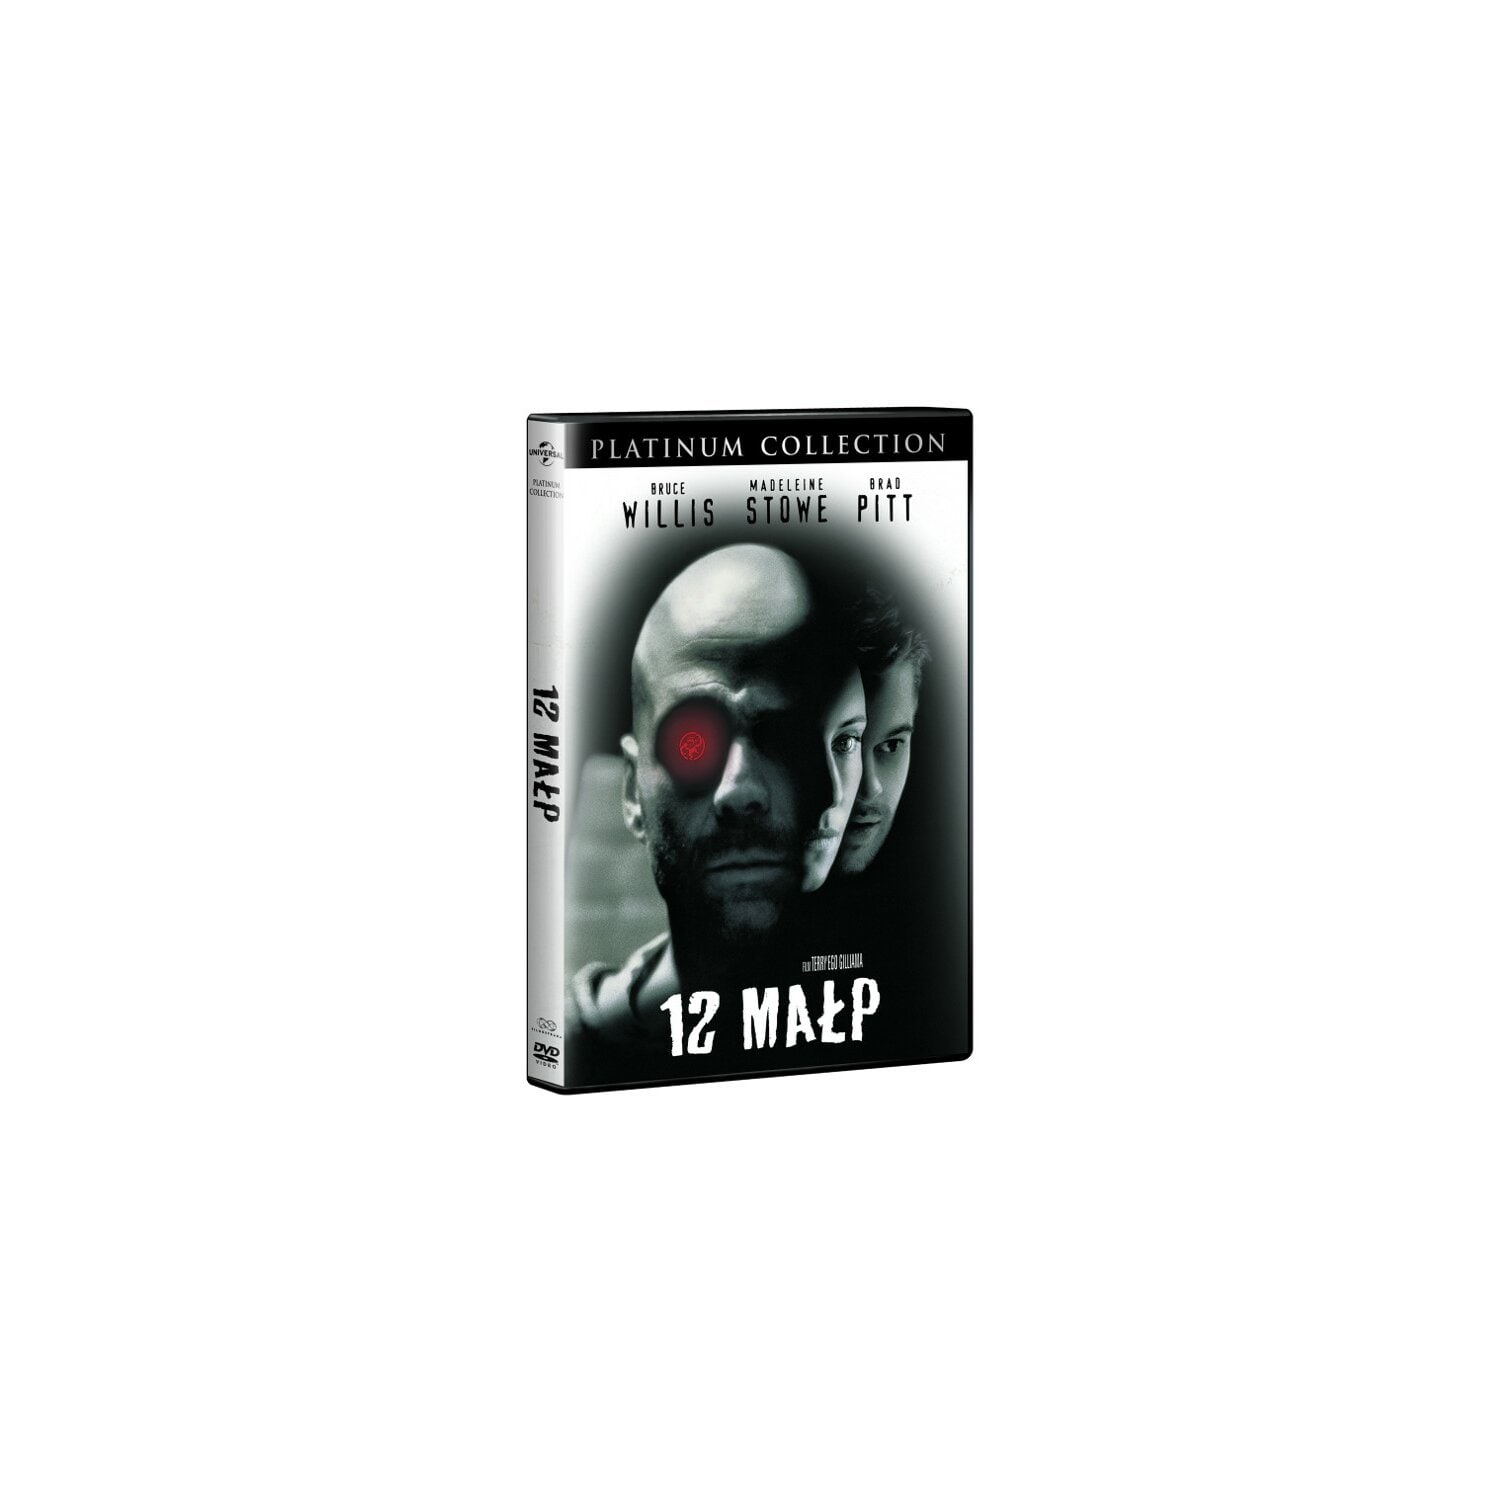 12 Małp (DVD) Premium Collection